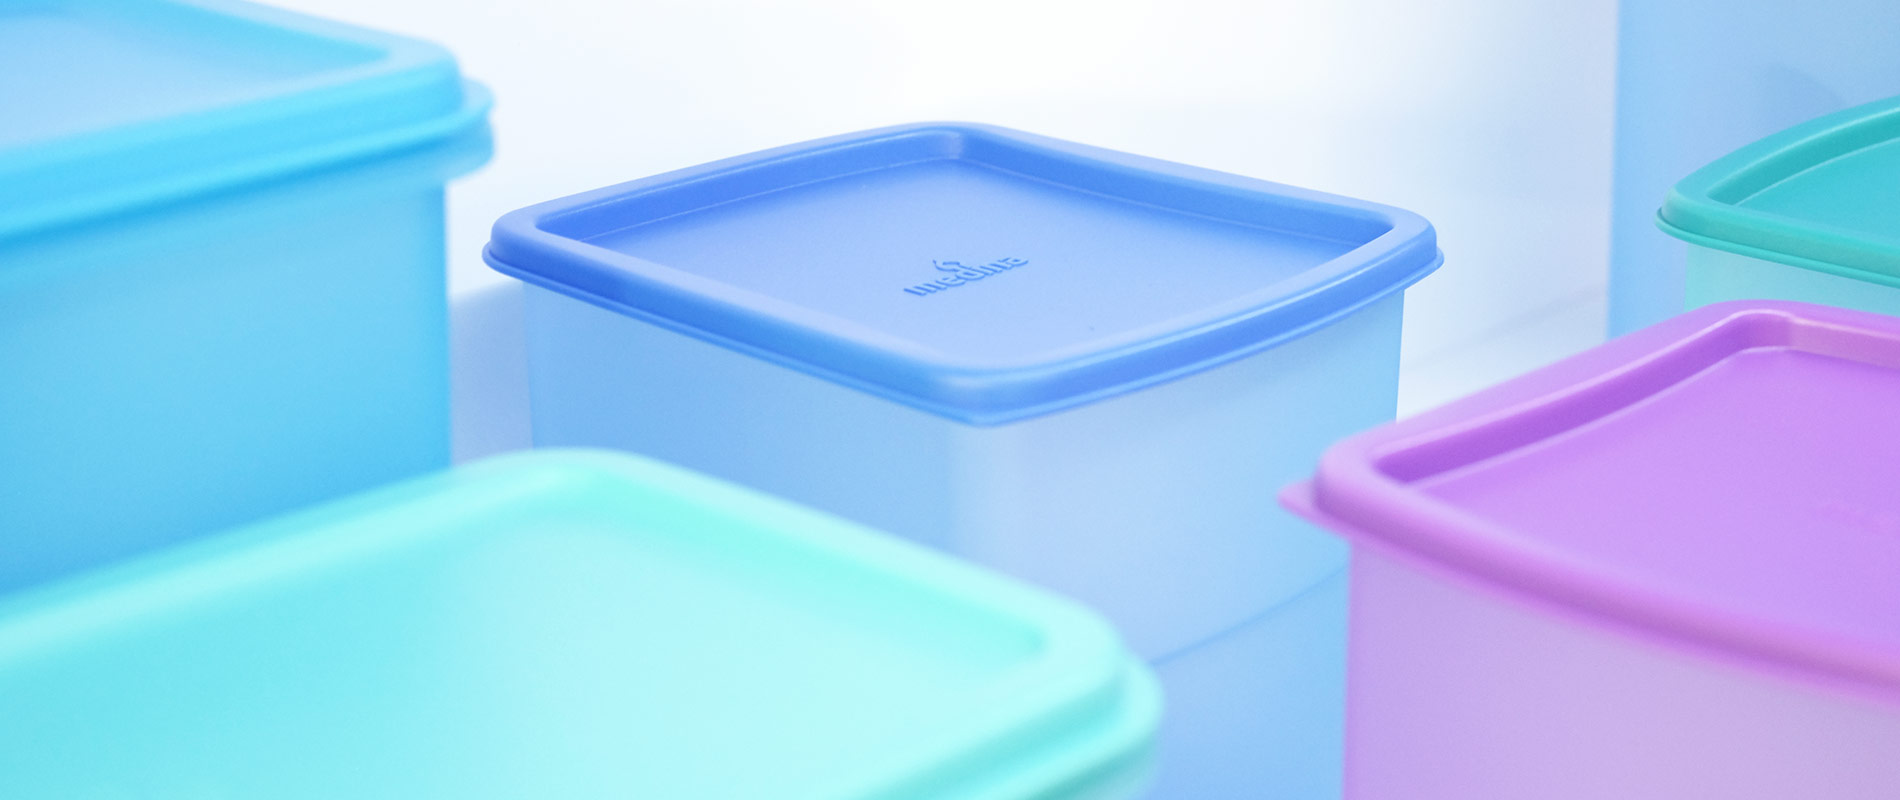 Medina Product Launching - Food containers